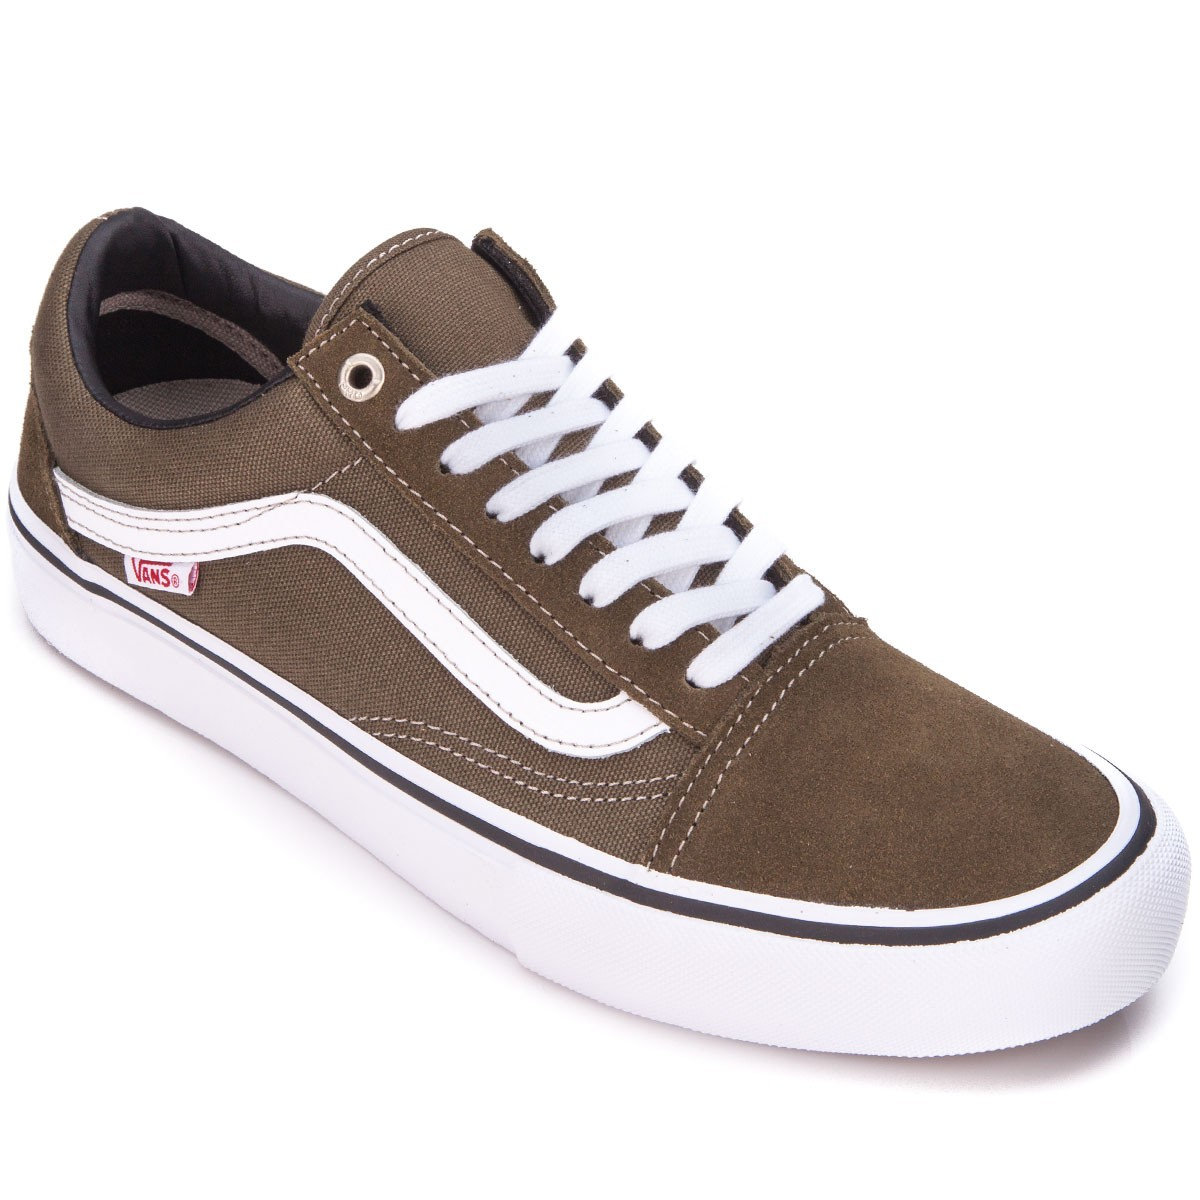 Vans Shoes Sale Size